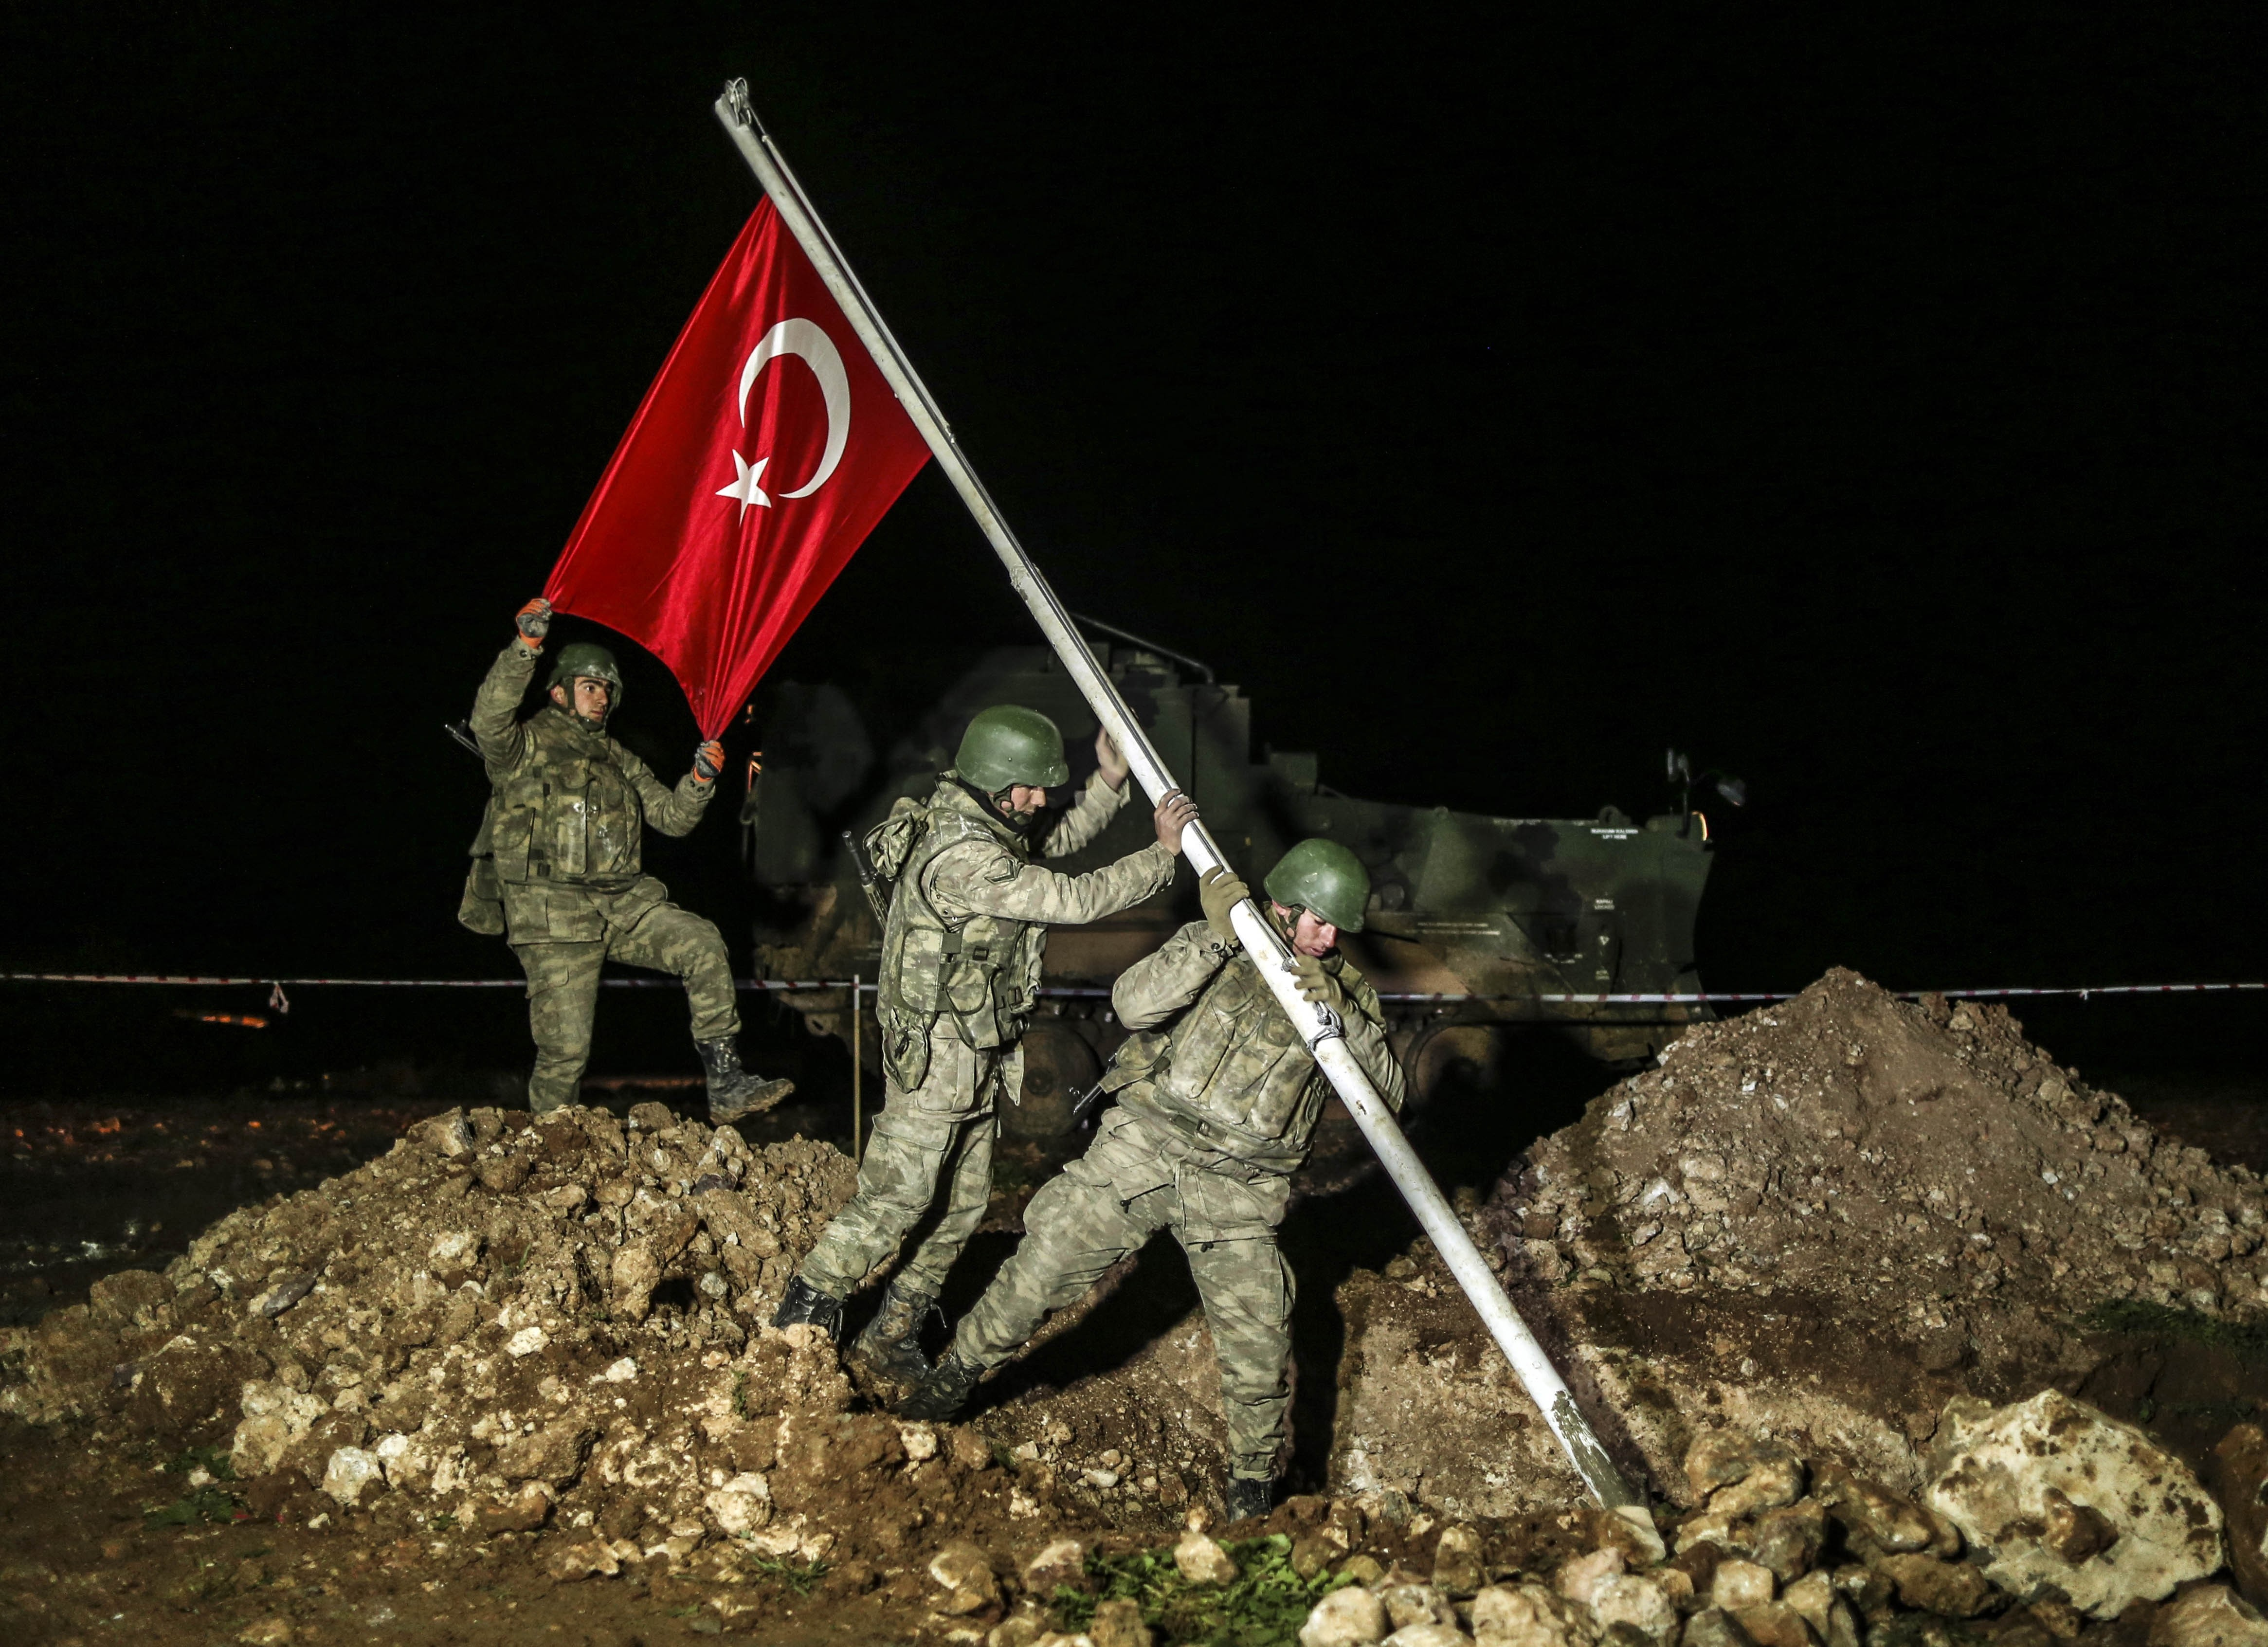 Turkish soldiers put a wire fence around area after Turkish flag is raised on Feb. 22, 2015 in the Esme region of Aleppo where the Tomb of Suleyman Shah will be placed.